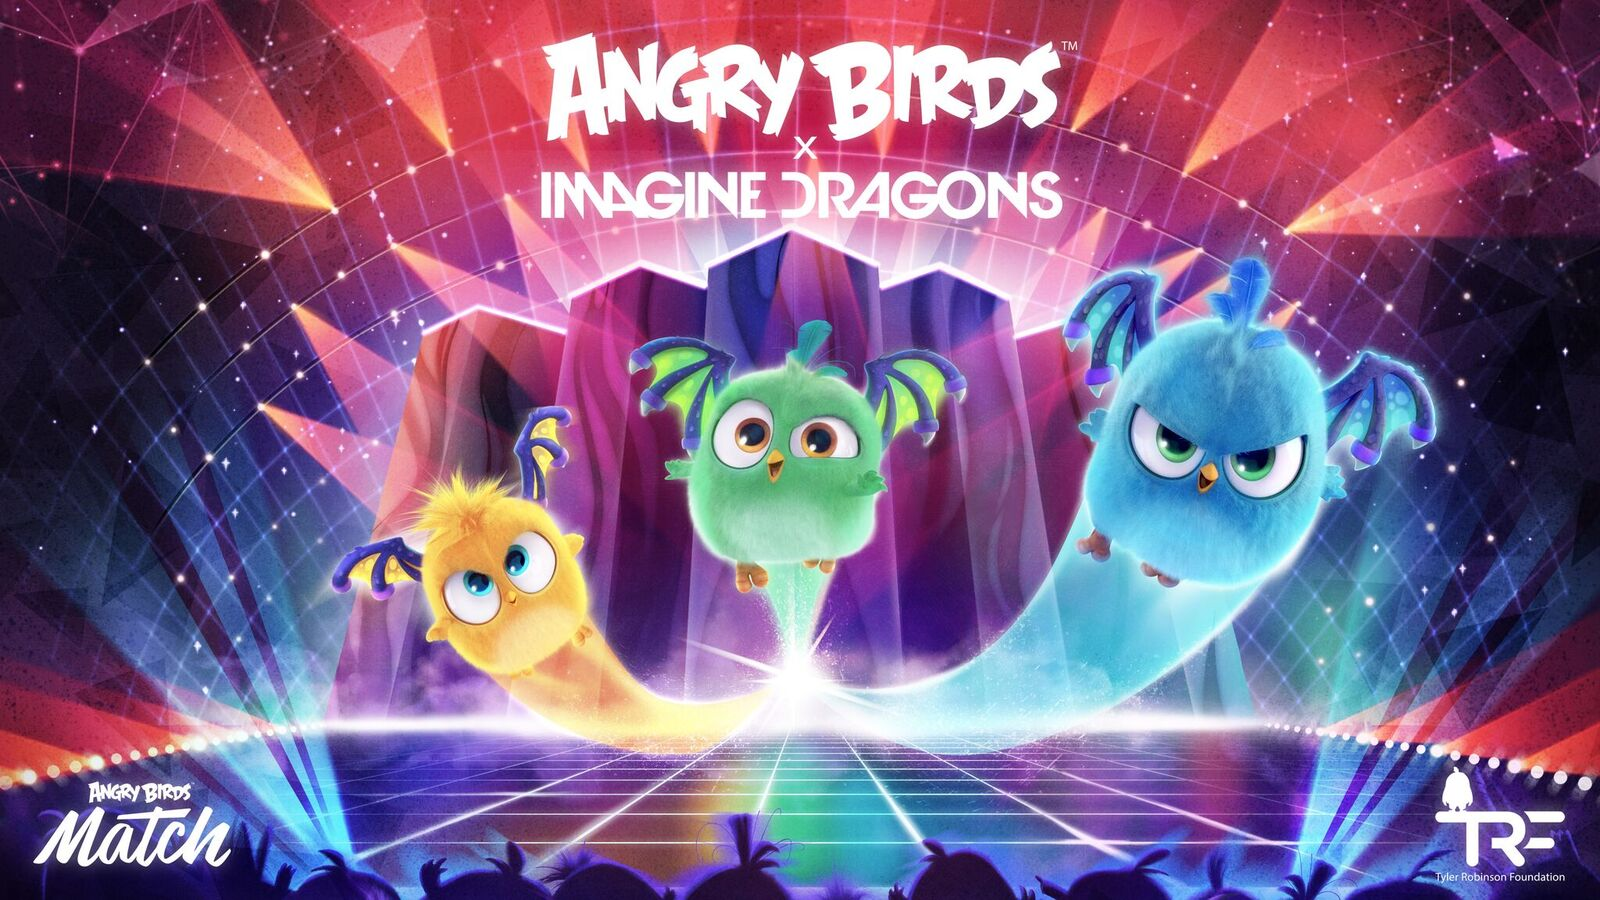 Angry Birds and Imagine Dragons come together in a charming collaboration